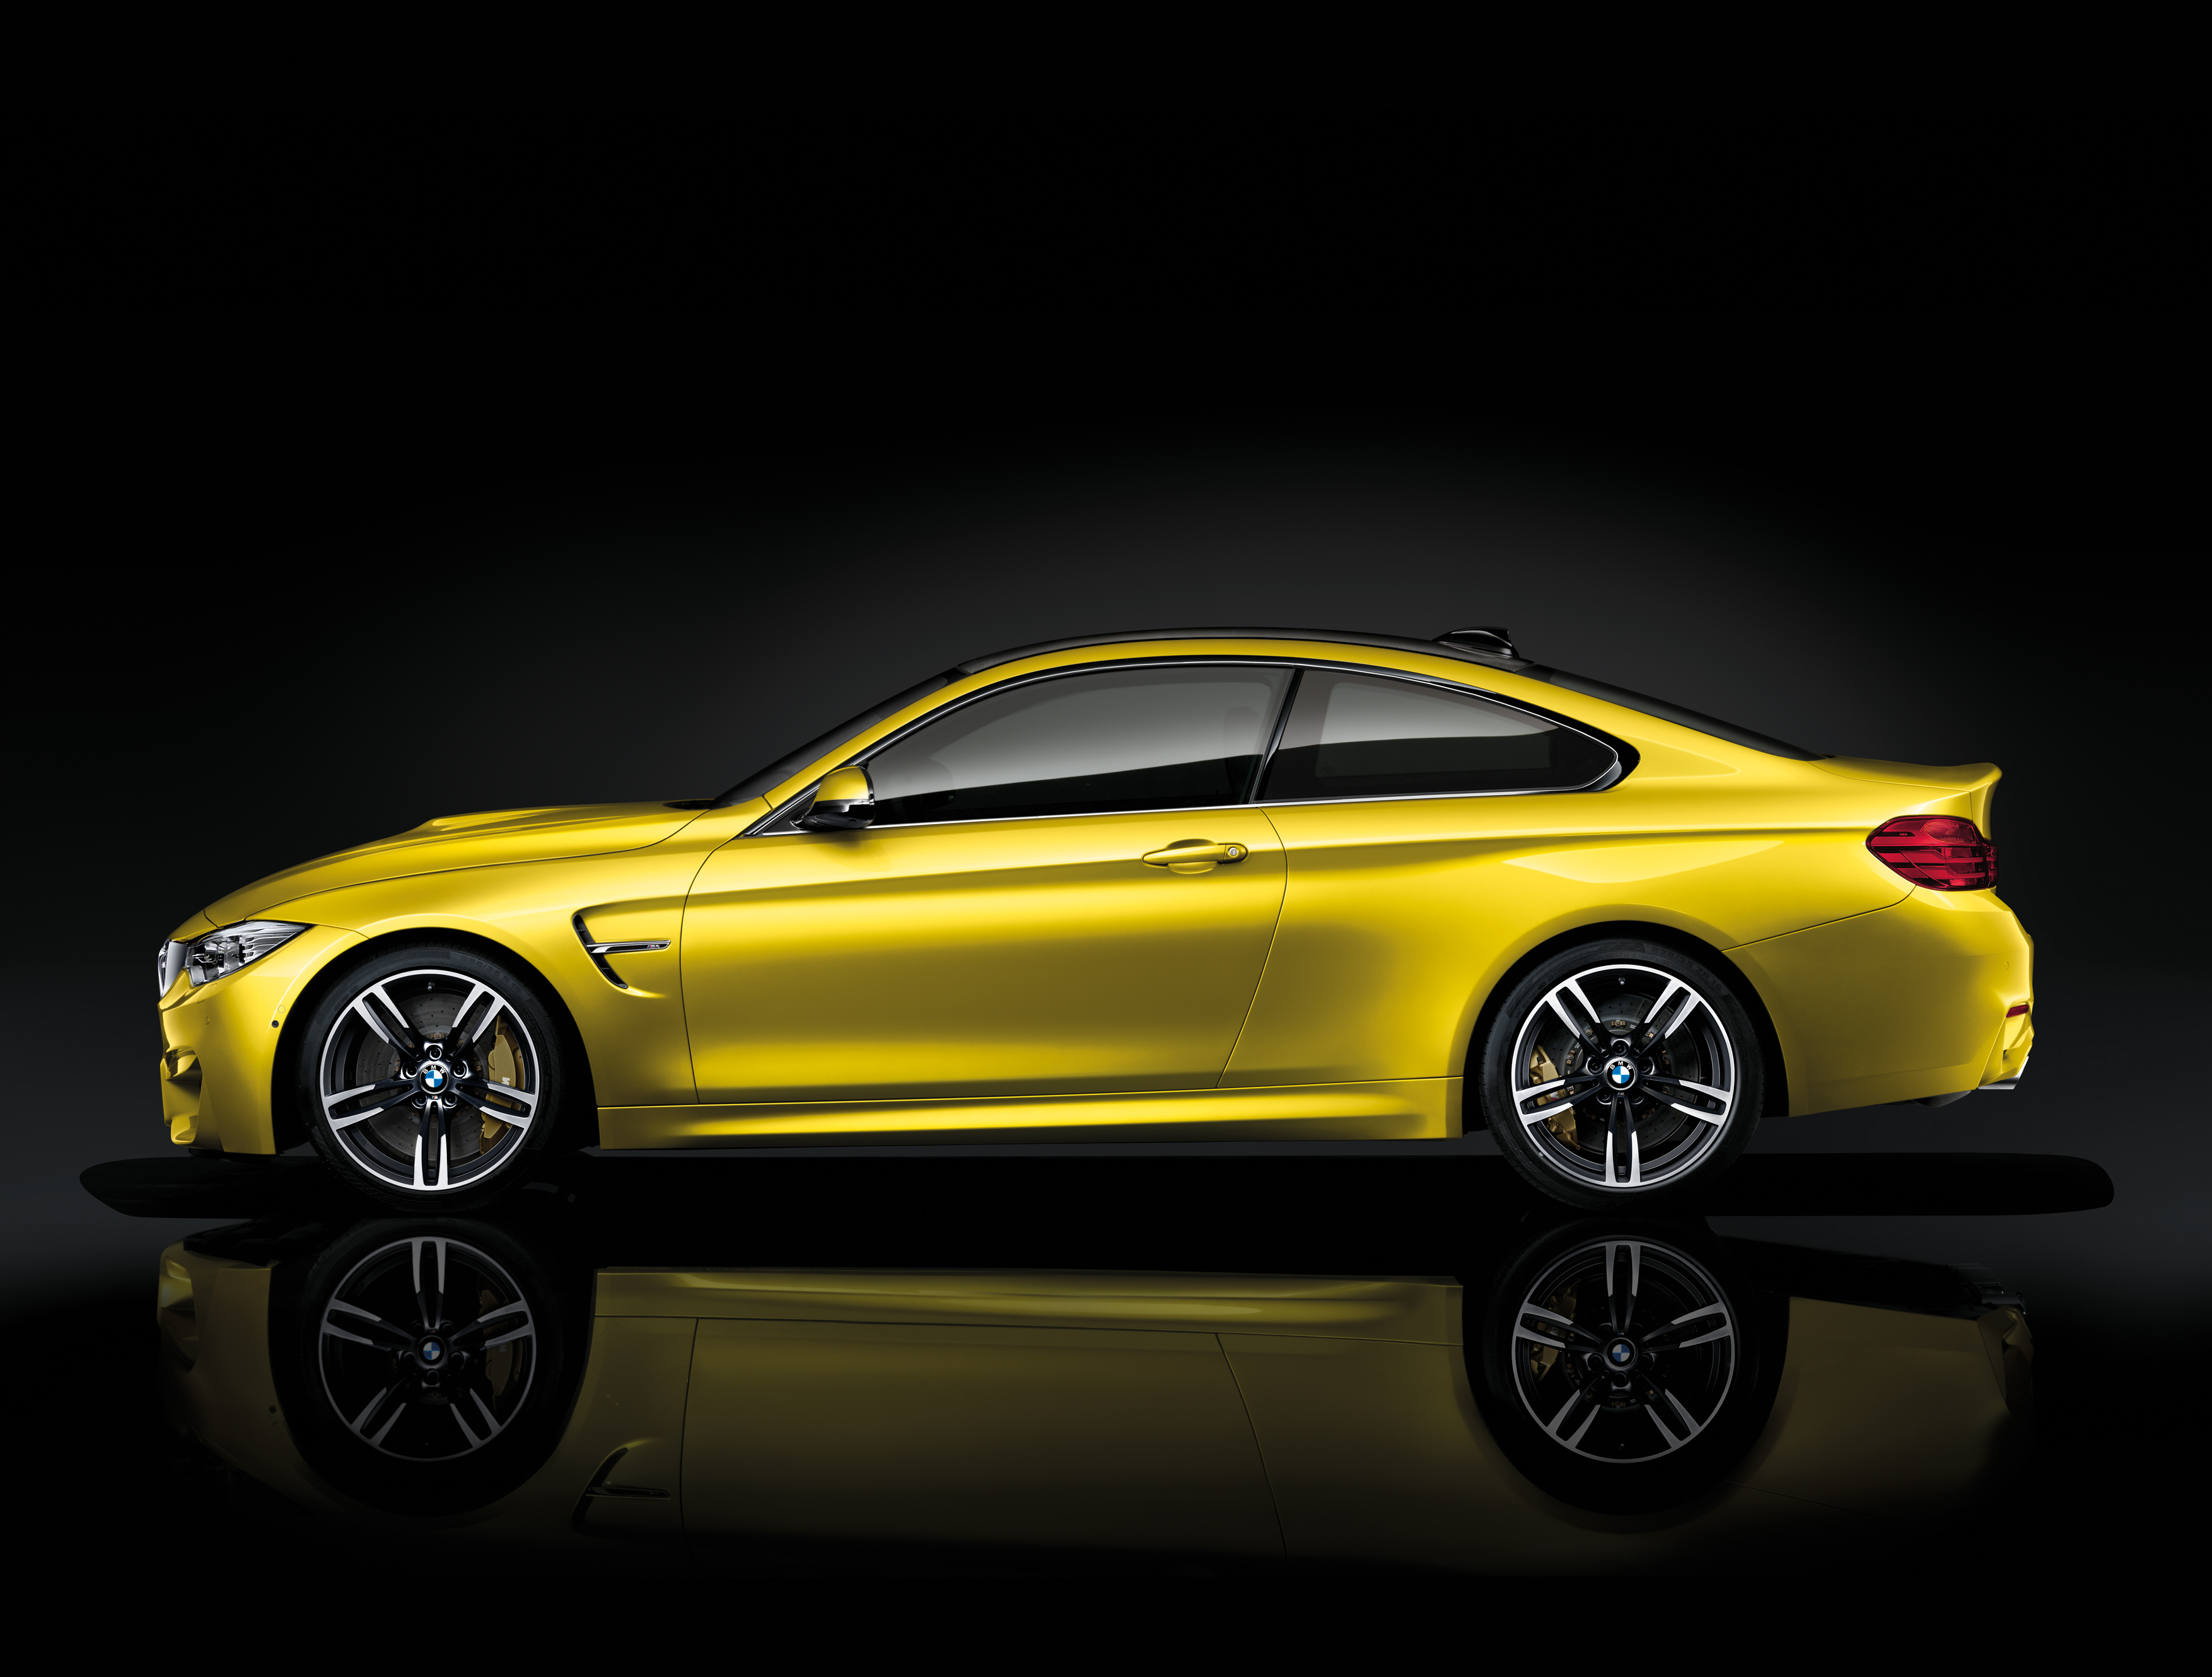 2015 BMW M4 Coupe Stills - (4) - SMADEMEDIA.COM Galleria